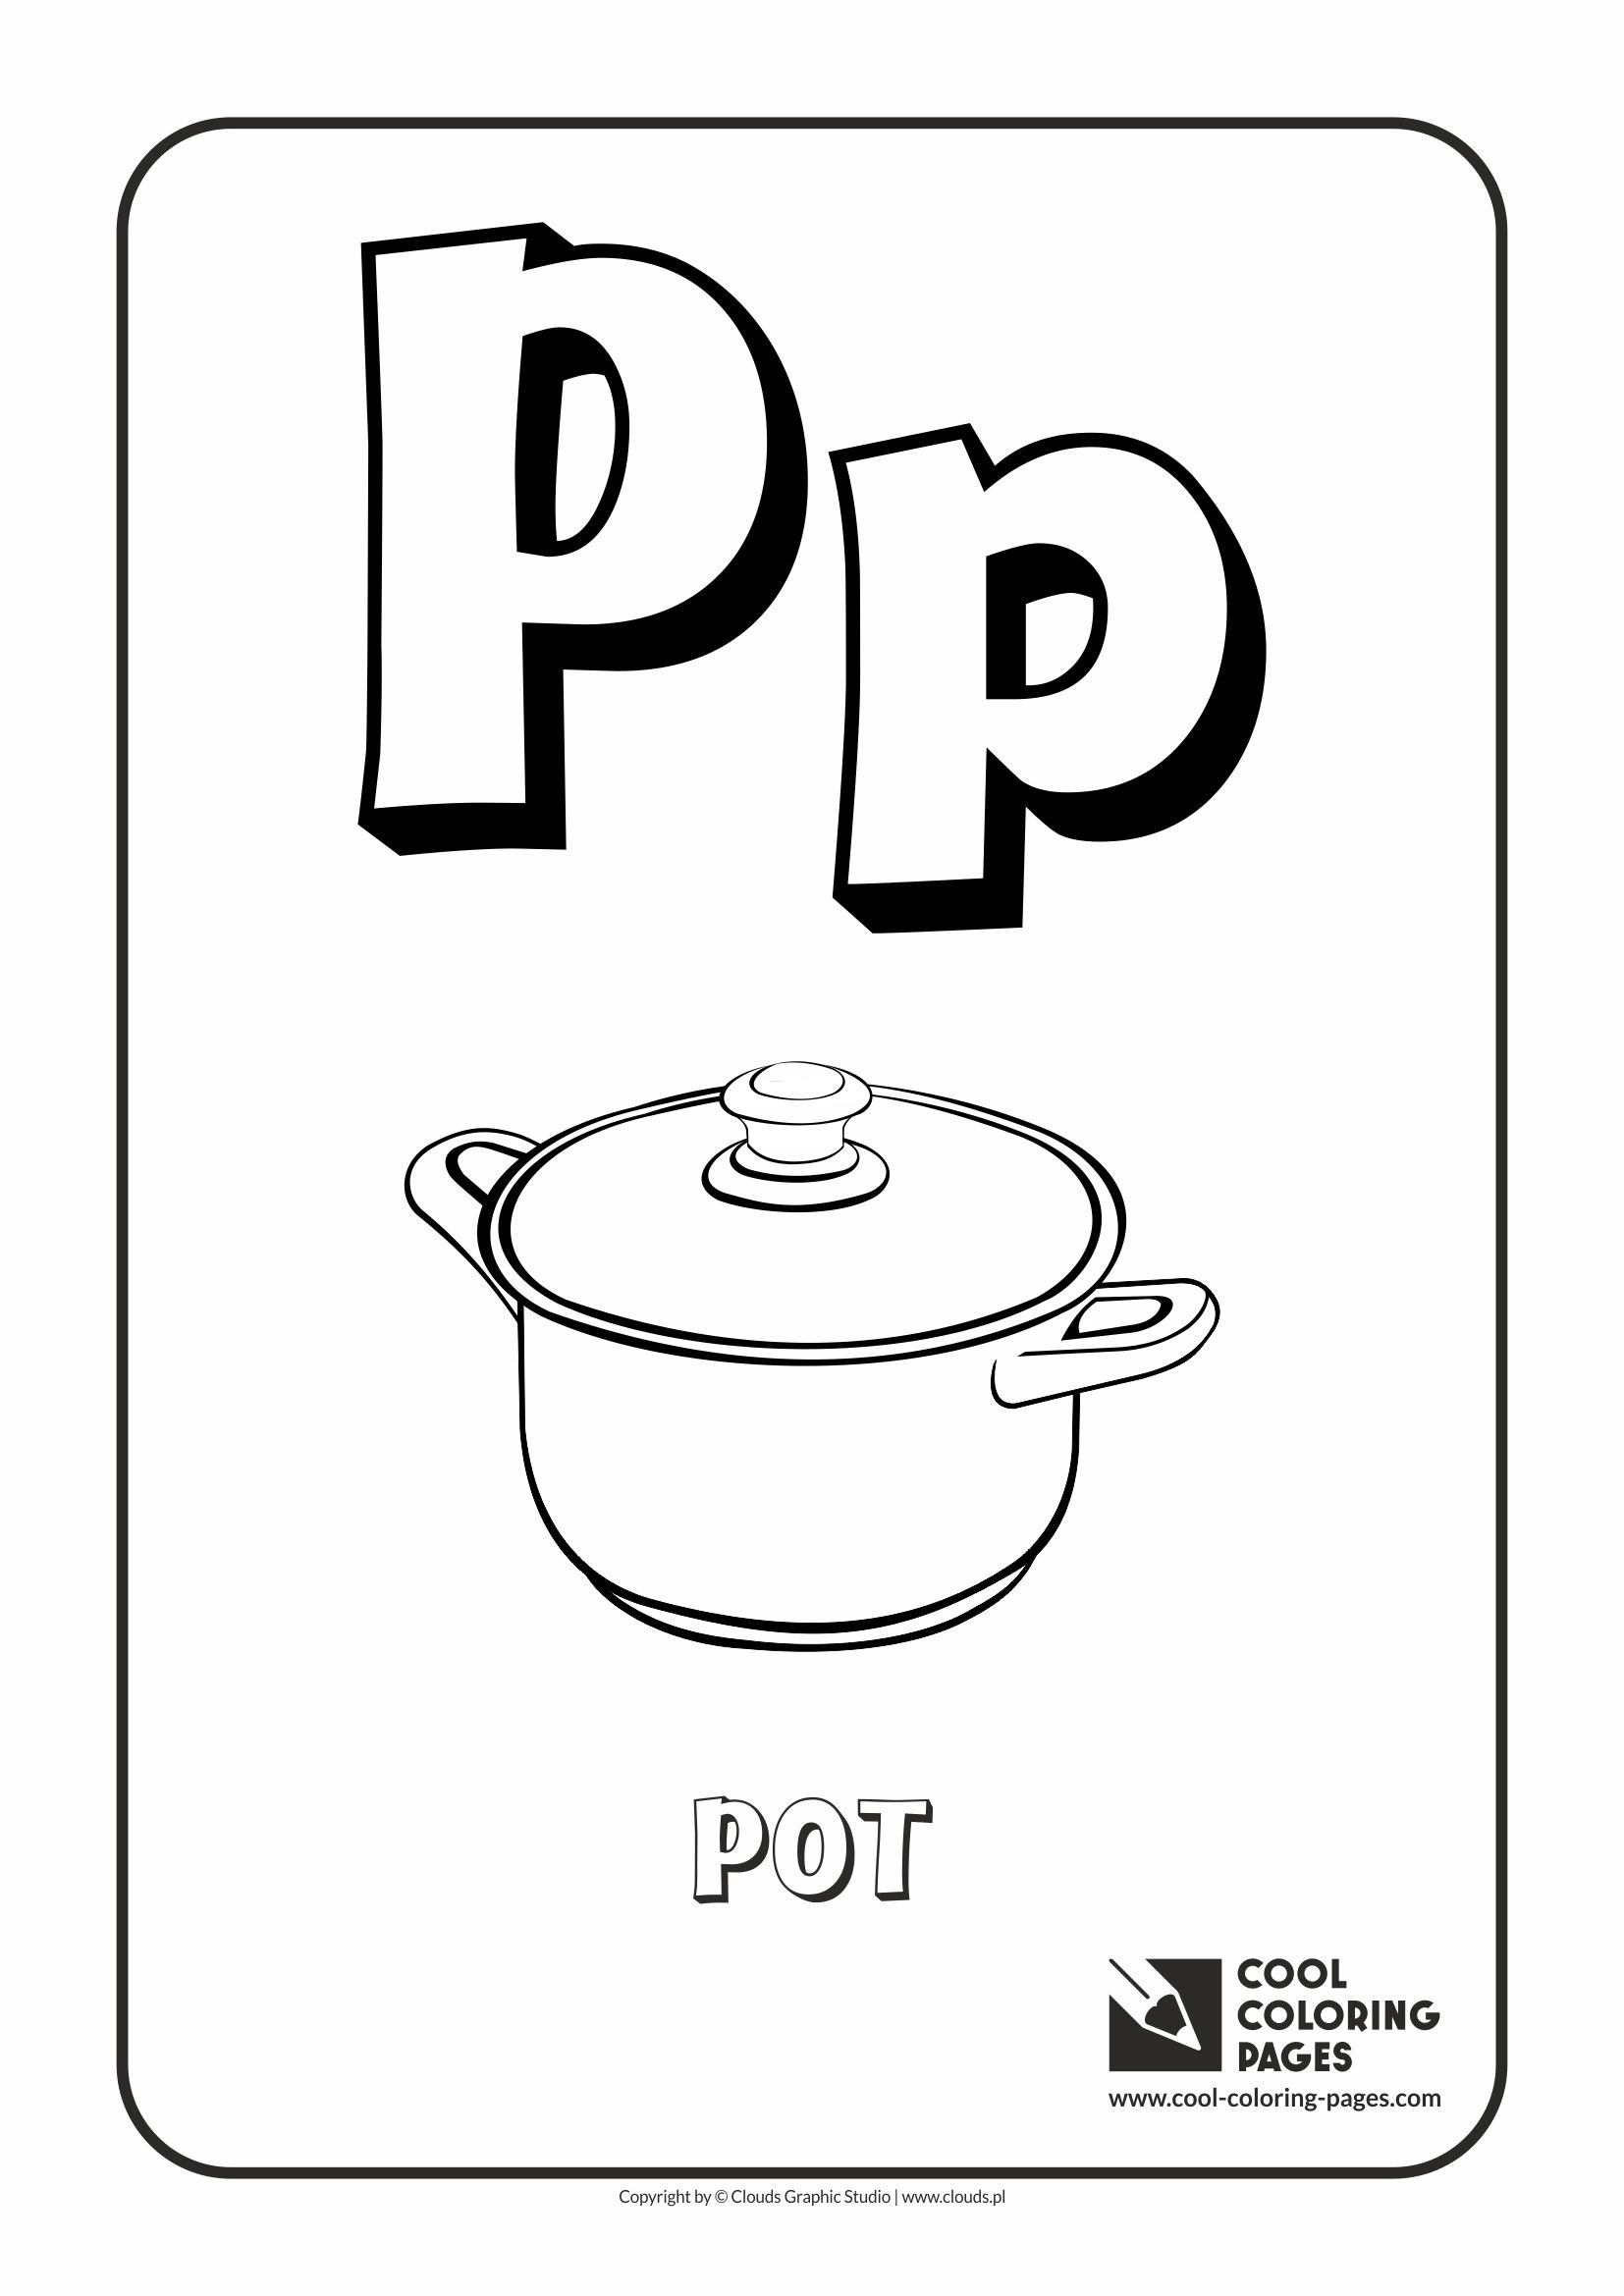 Cool coloring pages alphabet letter p coloring page with letter p